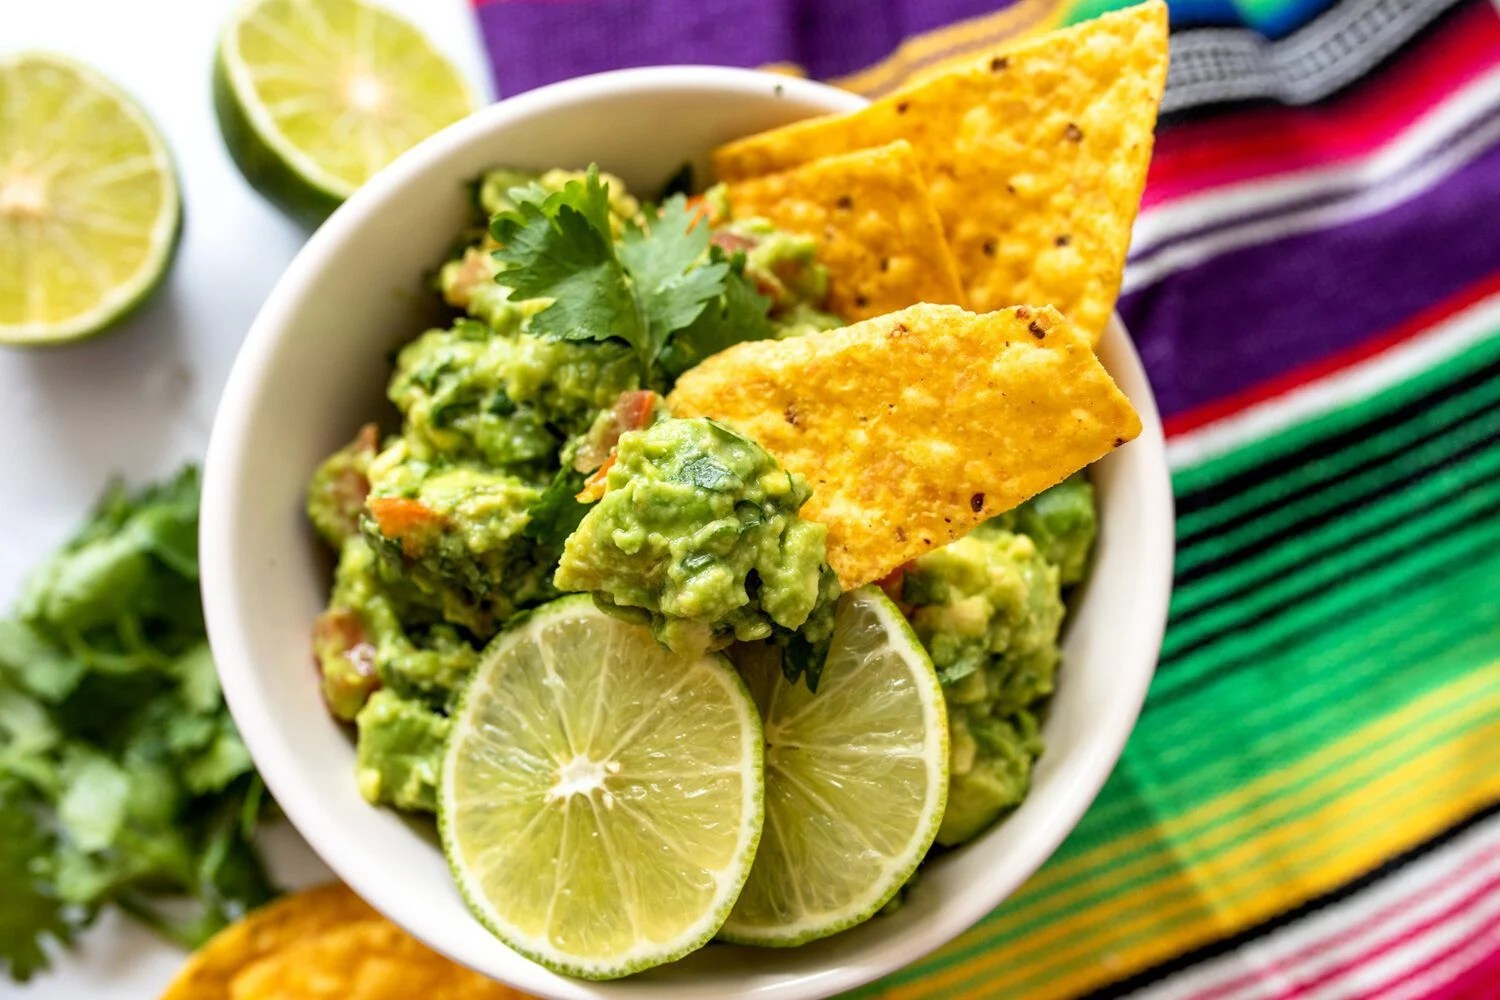 bowl of homemade guacamole